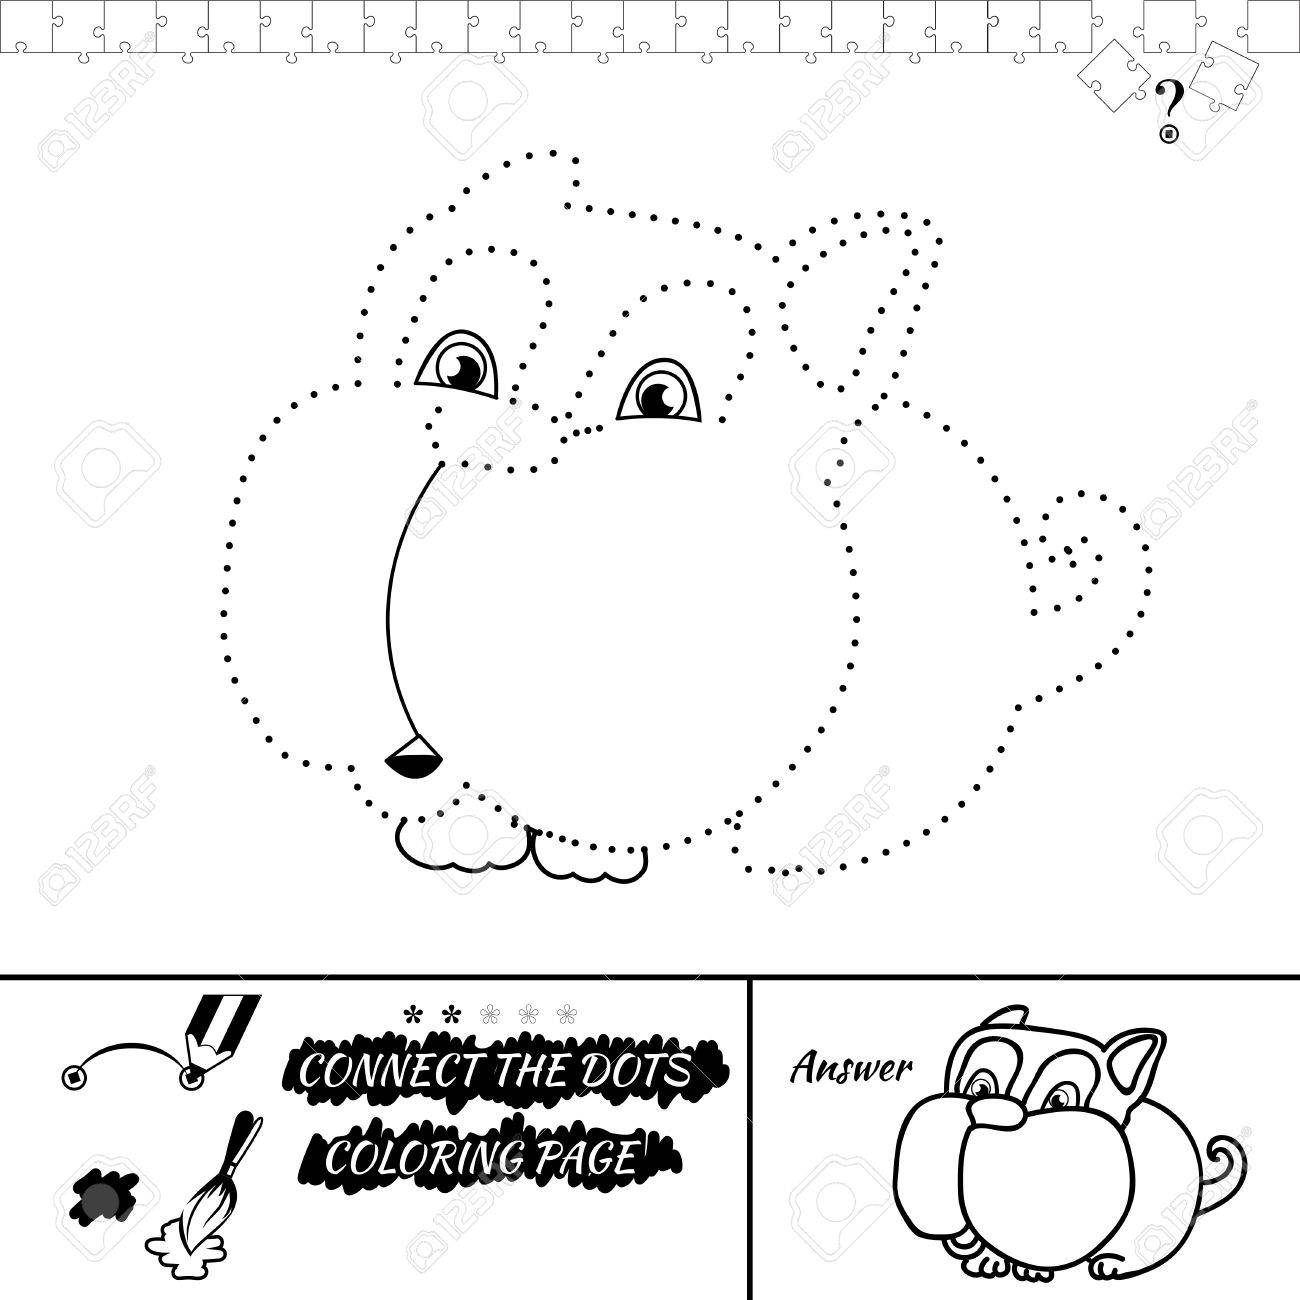 connect the dots picture and coloring page puzzle for kids